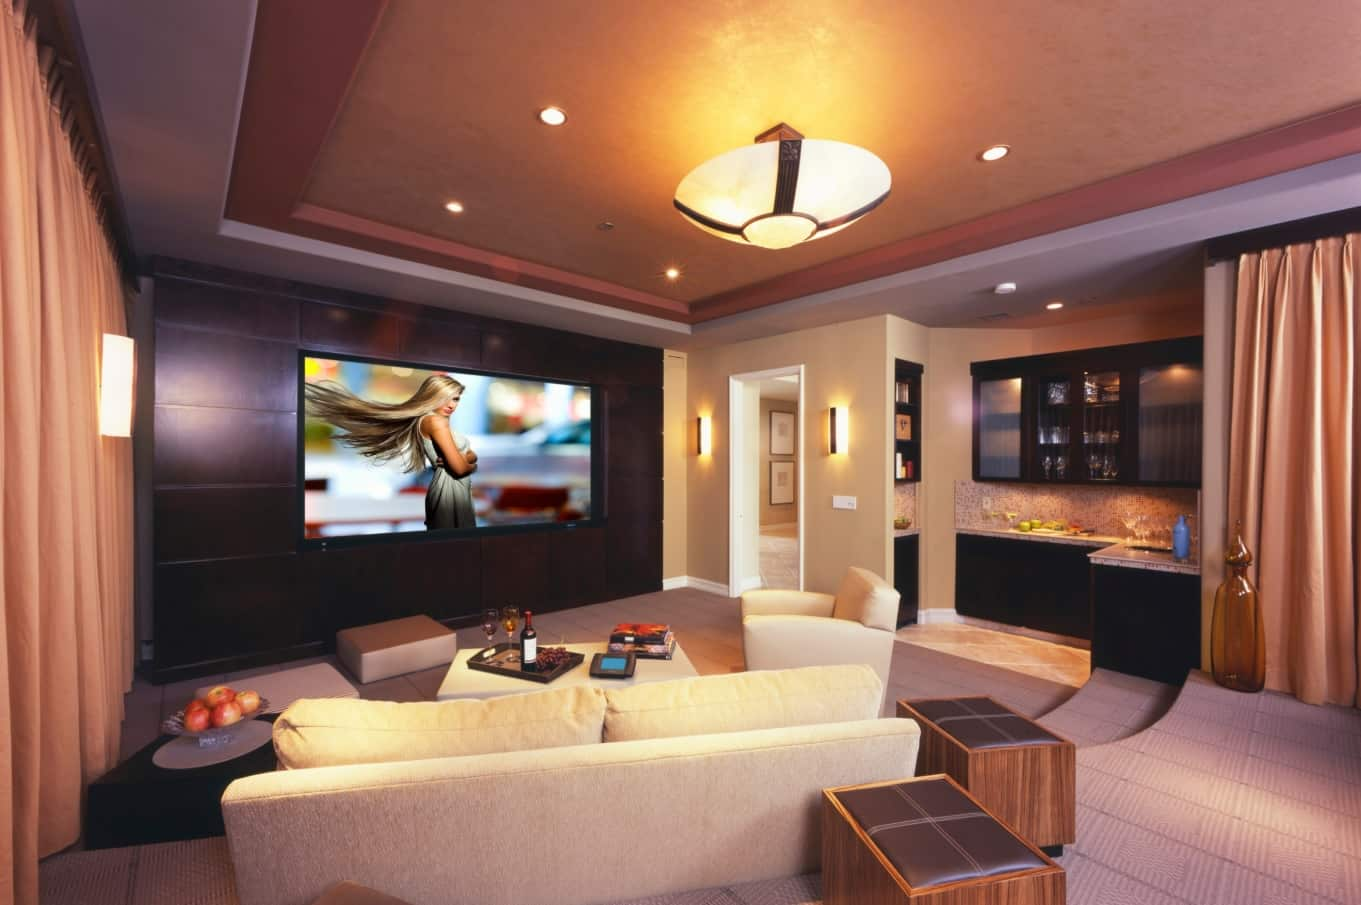 5 Home Theater Tips Other Than Getting a Kicking Projector. Living room theater with large TV screen and relaxing zone